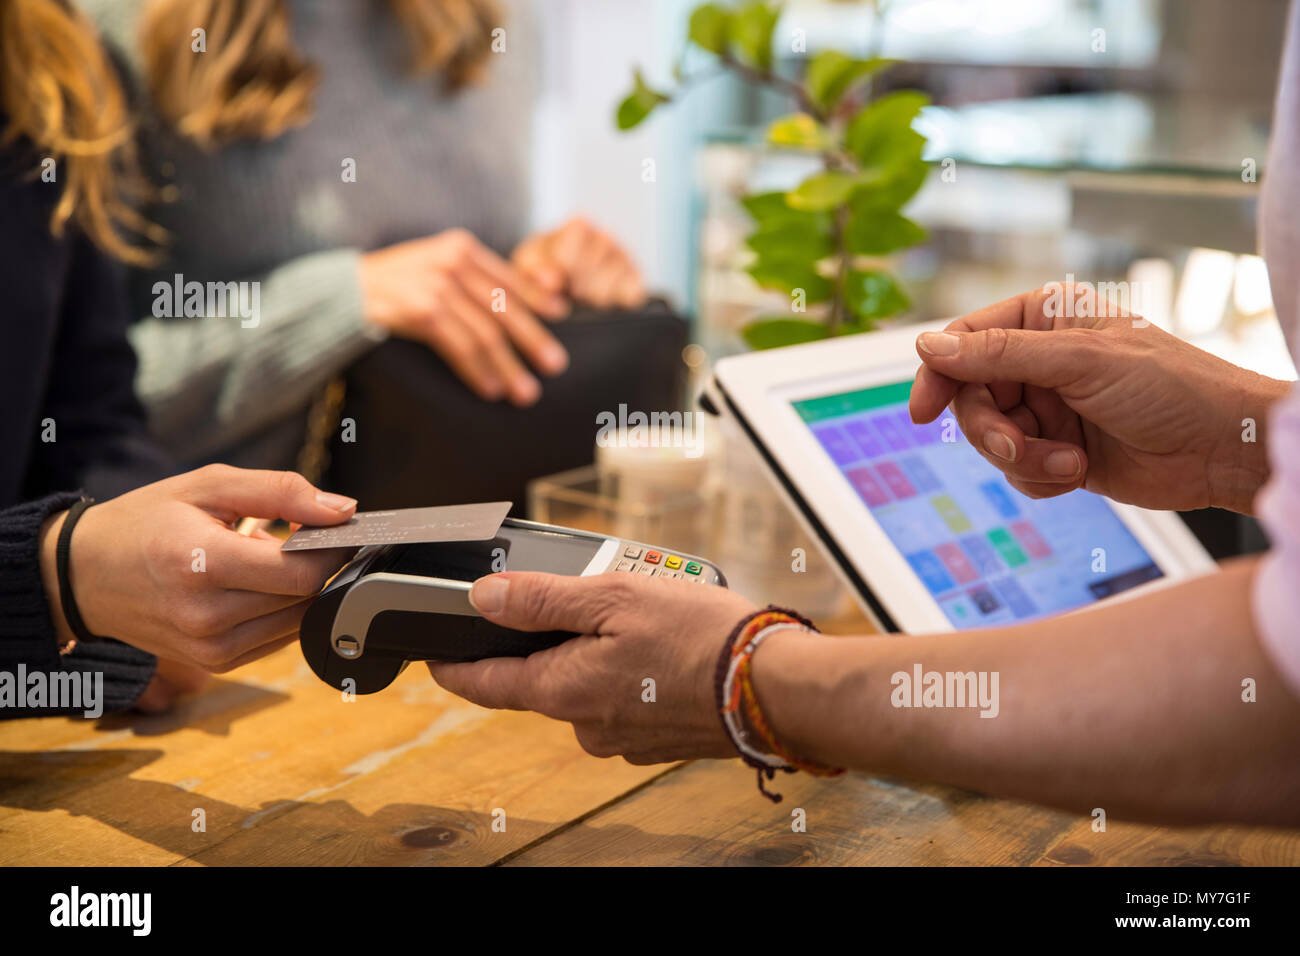 Female customer in shop, paying for goods using credit card on contactless payment machine, mid section, close-up - Stock Image